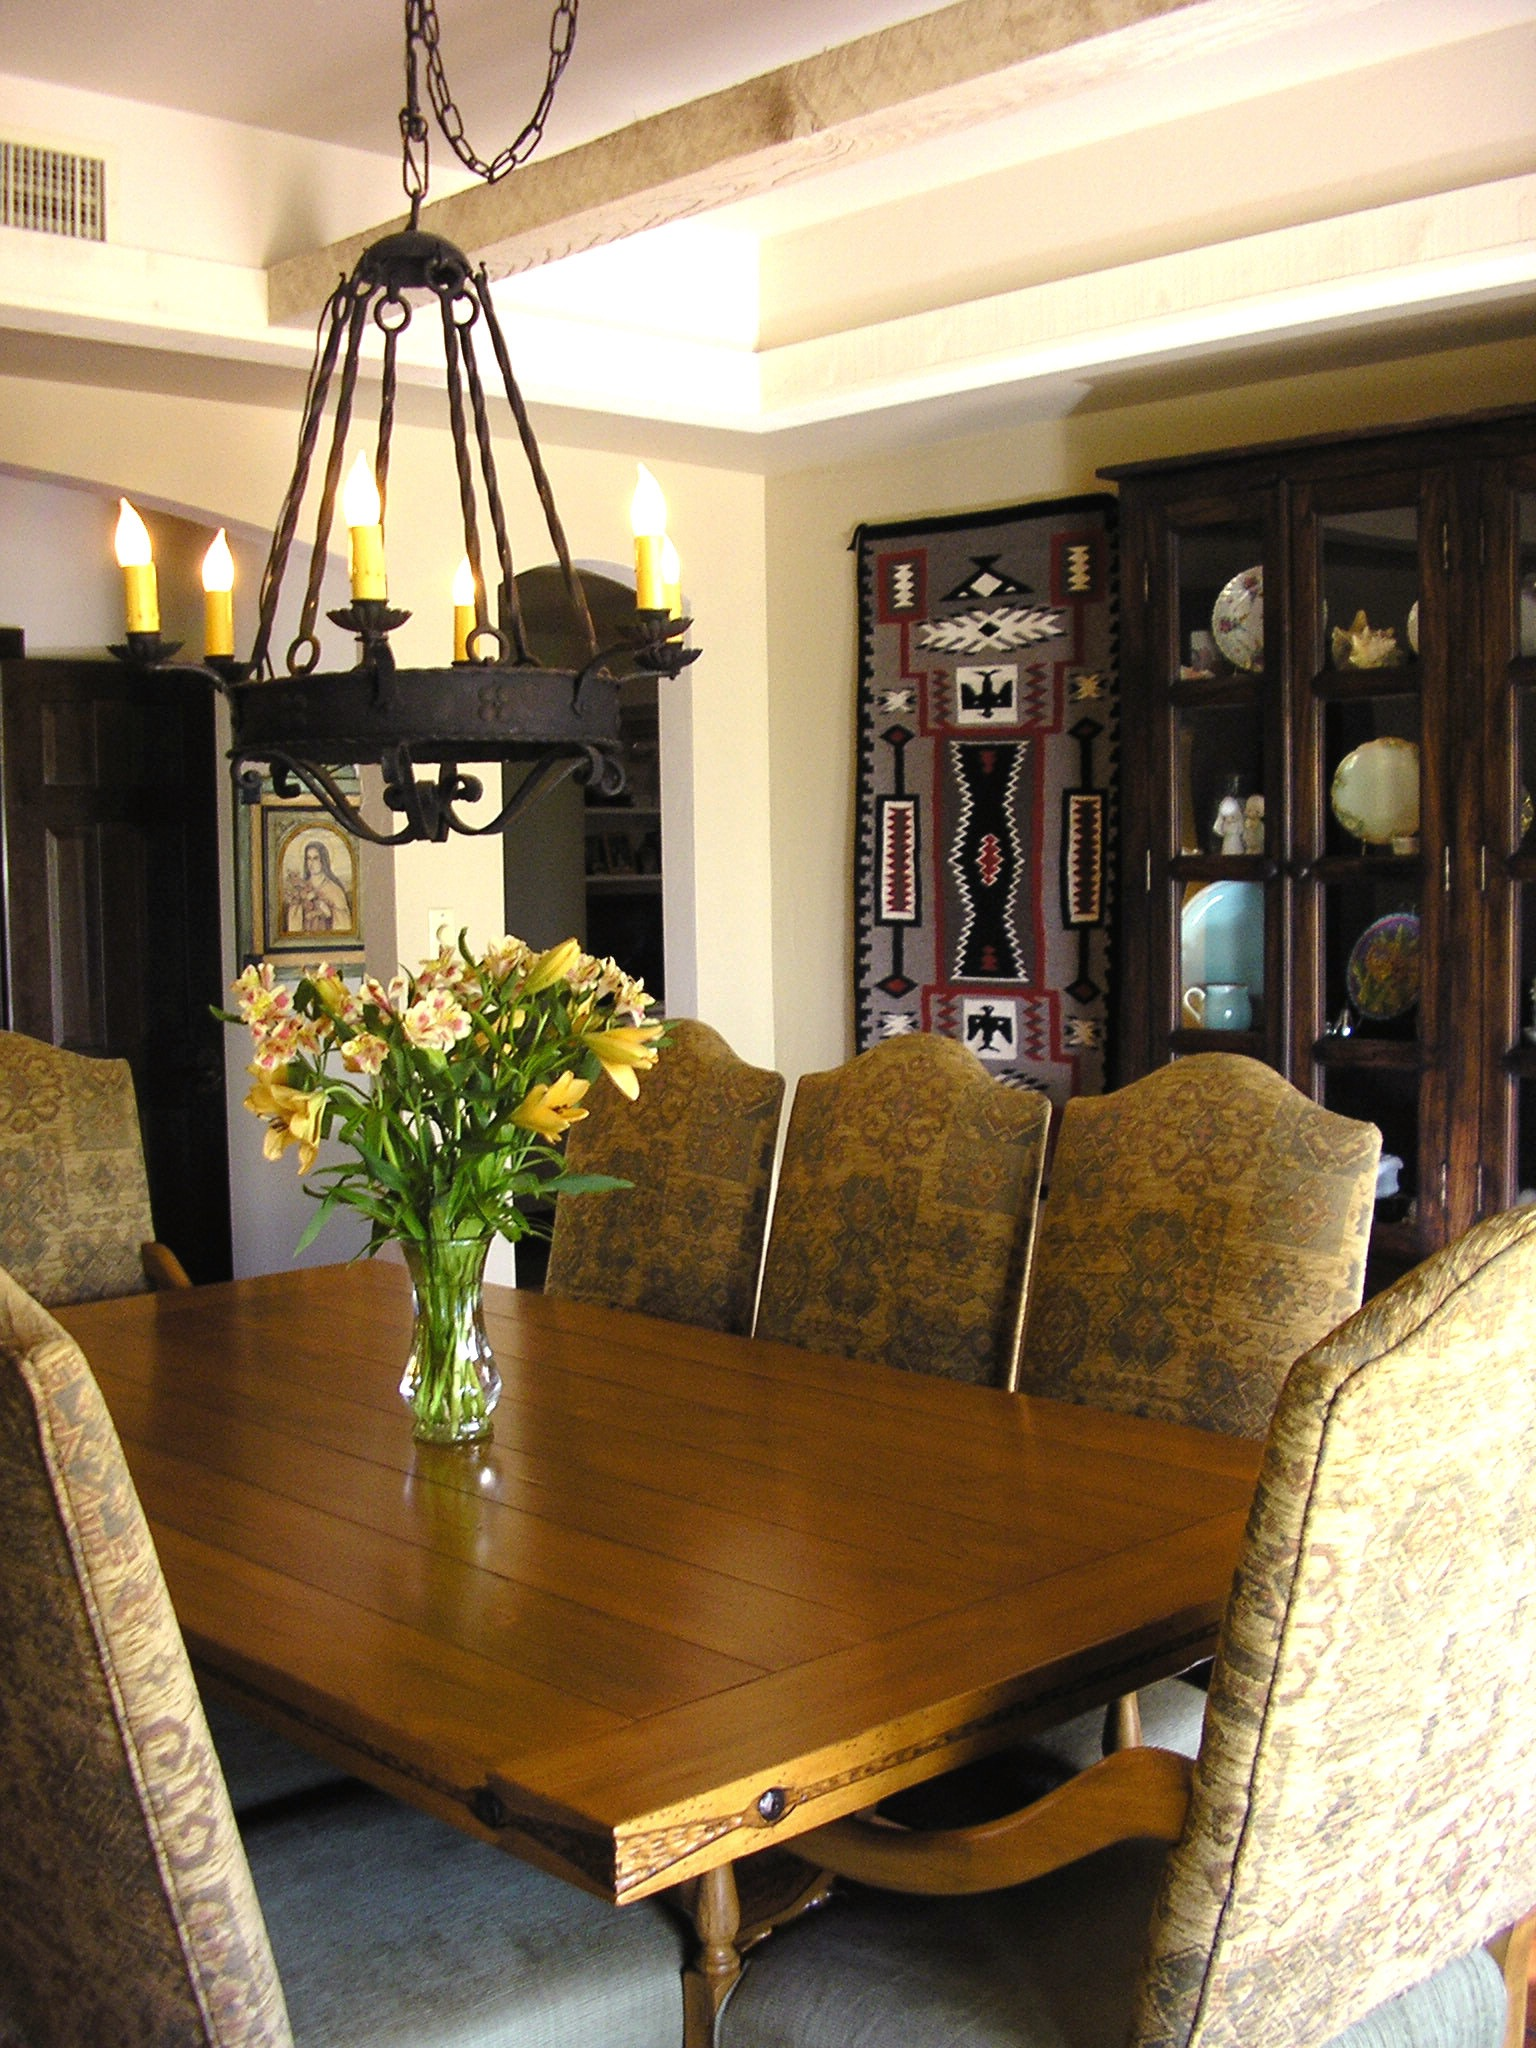 Neutral Southwestern Dining Room With Iron Chandelier (Image 7 of 11)